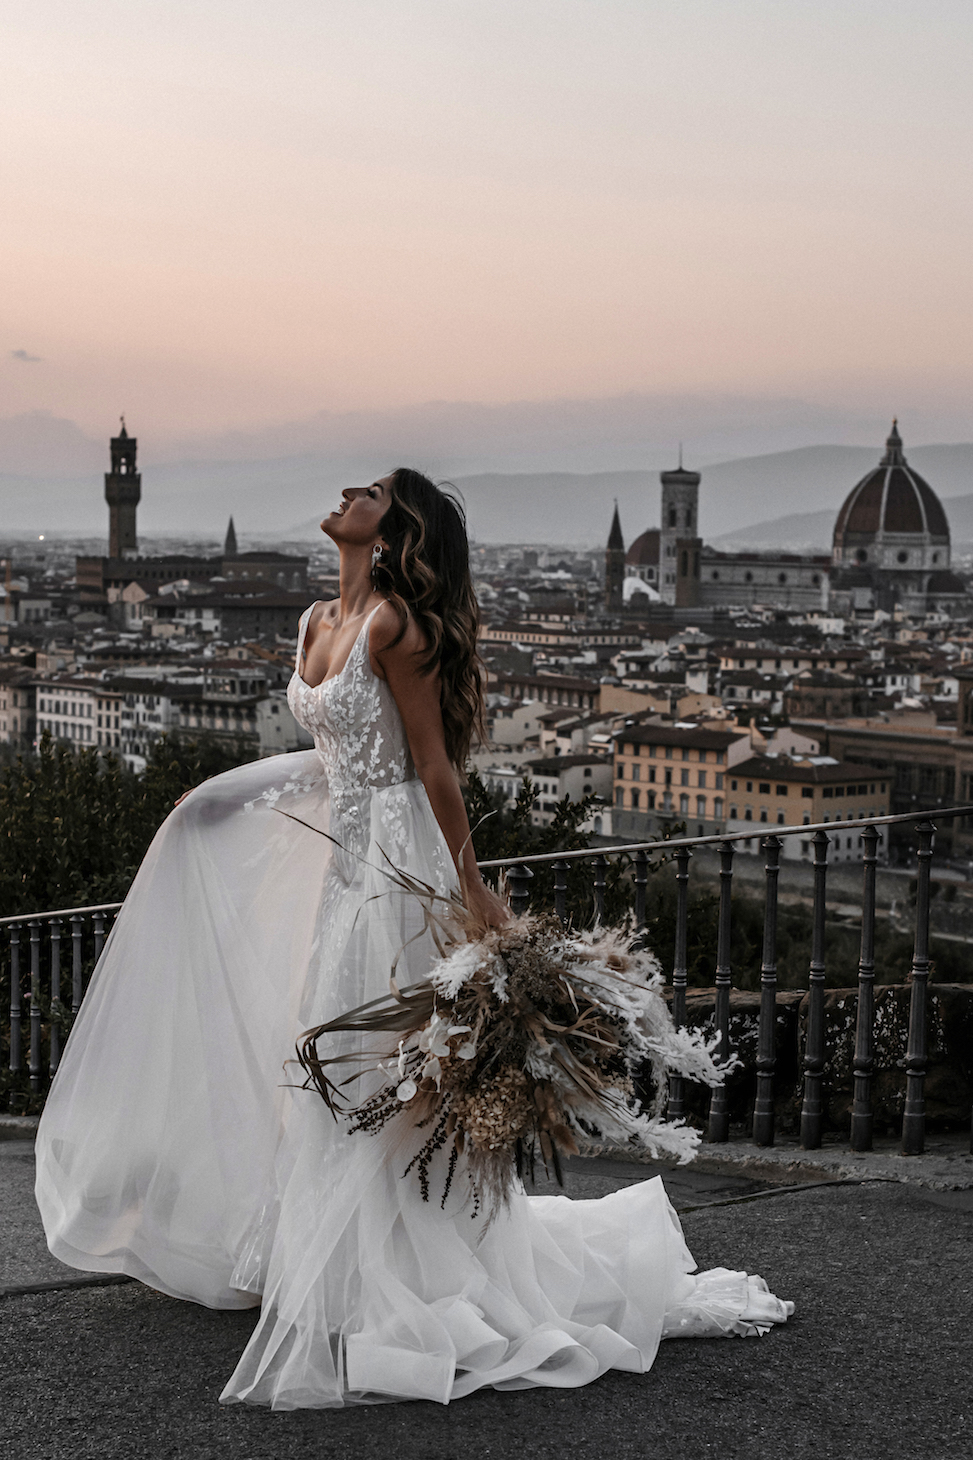 Woman standing in front of city scape, looking to sky, holding up the skirt of white wedding dress in one hand, dried flowers in the other